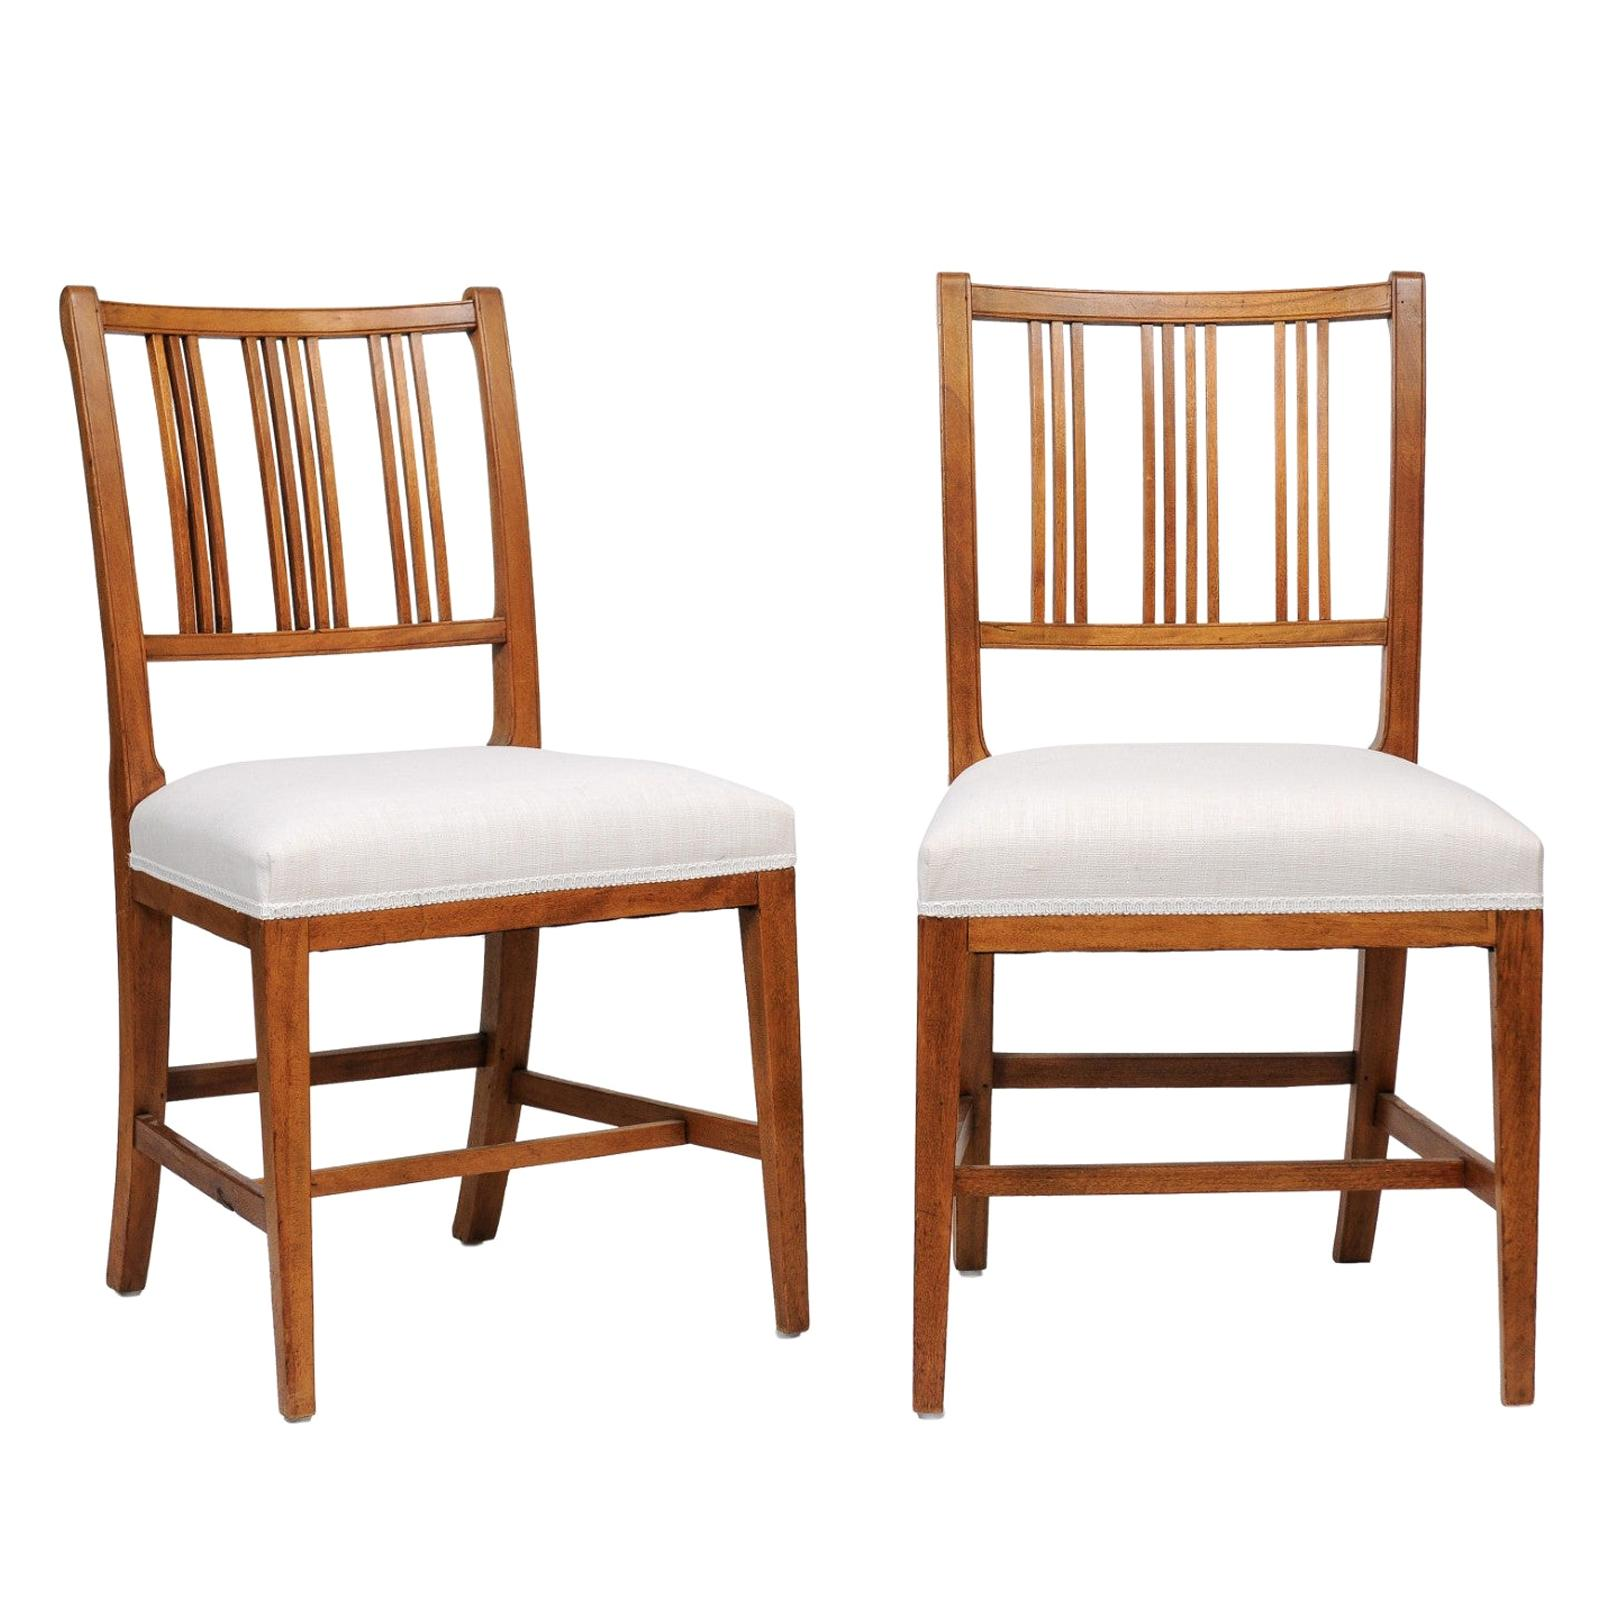 Regency Style Mahogany Dining Chair, Six or a Set